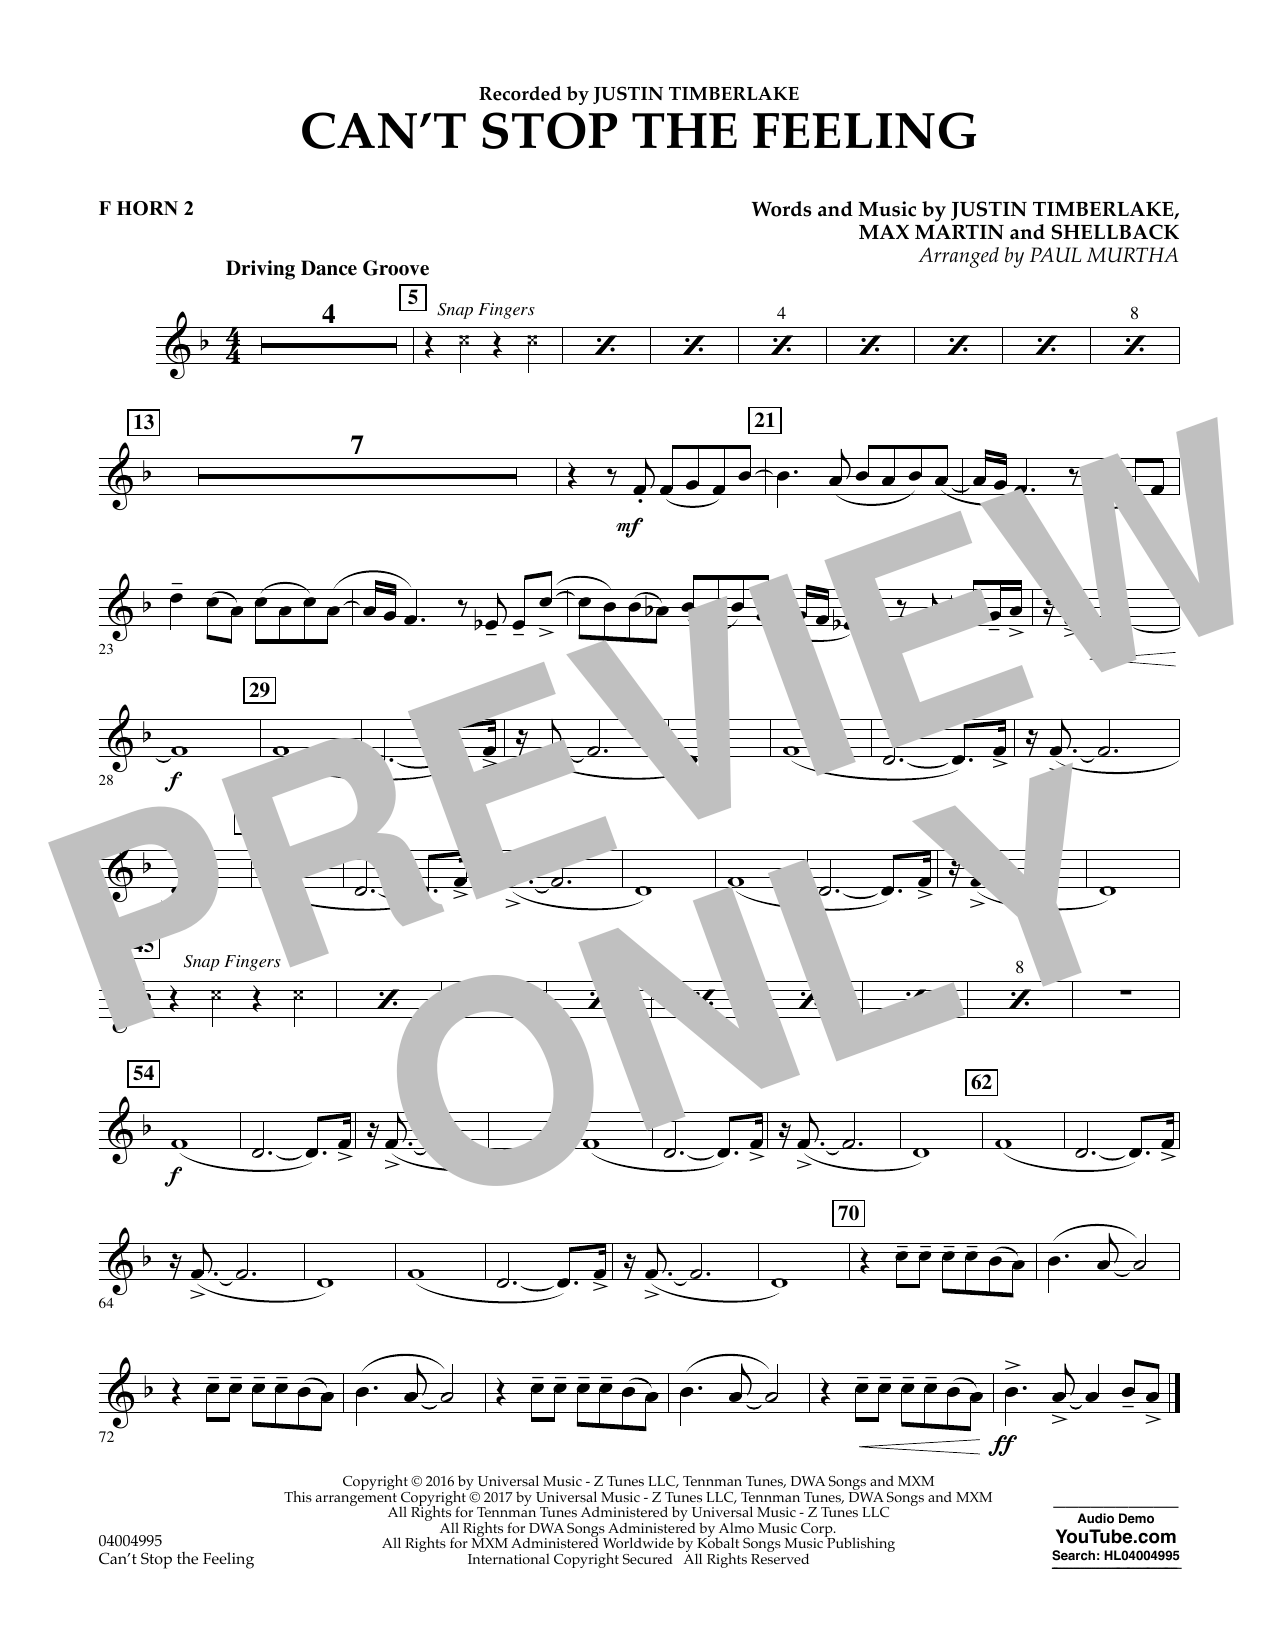 Can't Stop the Feeling - F Horn 2 Sheet Music